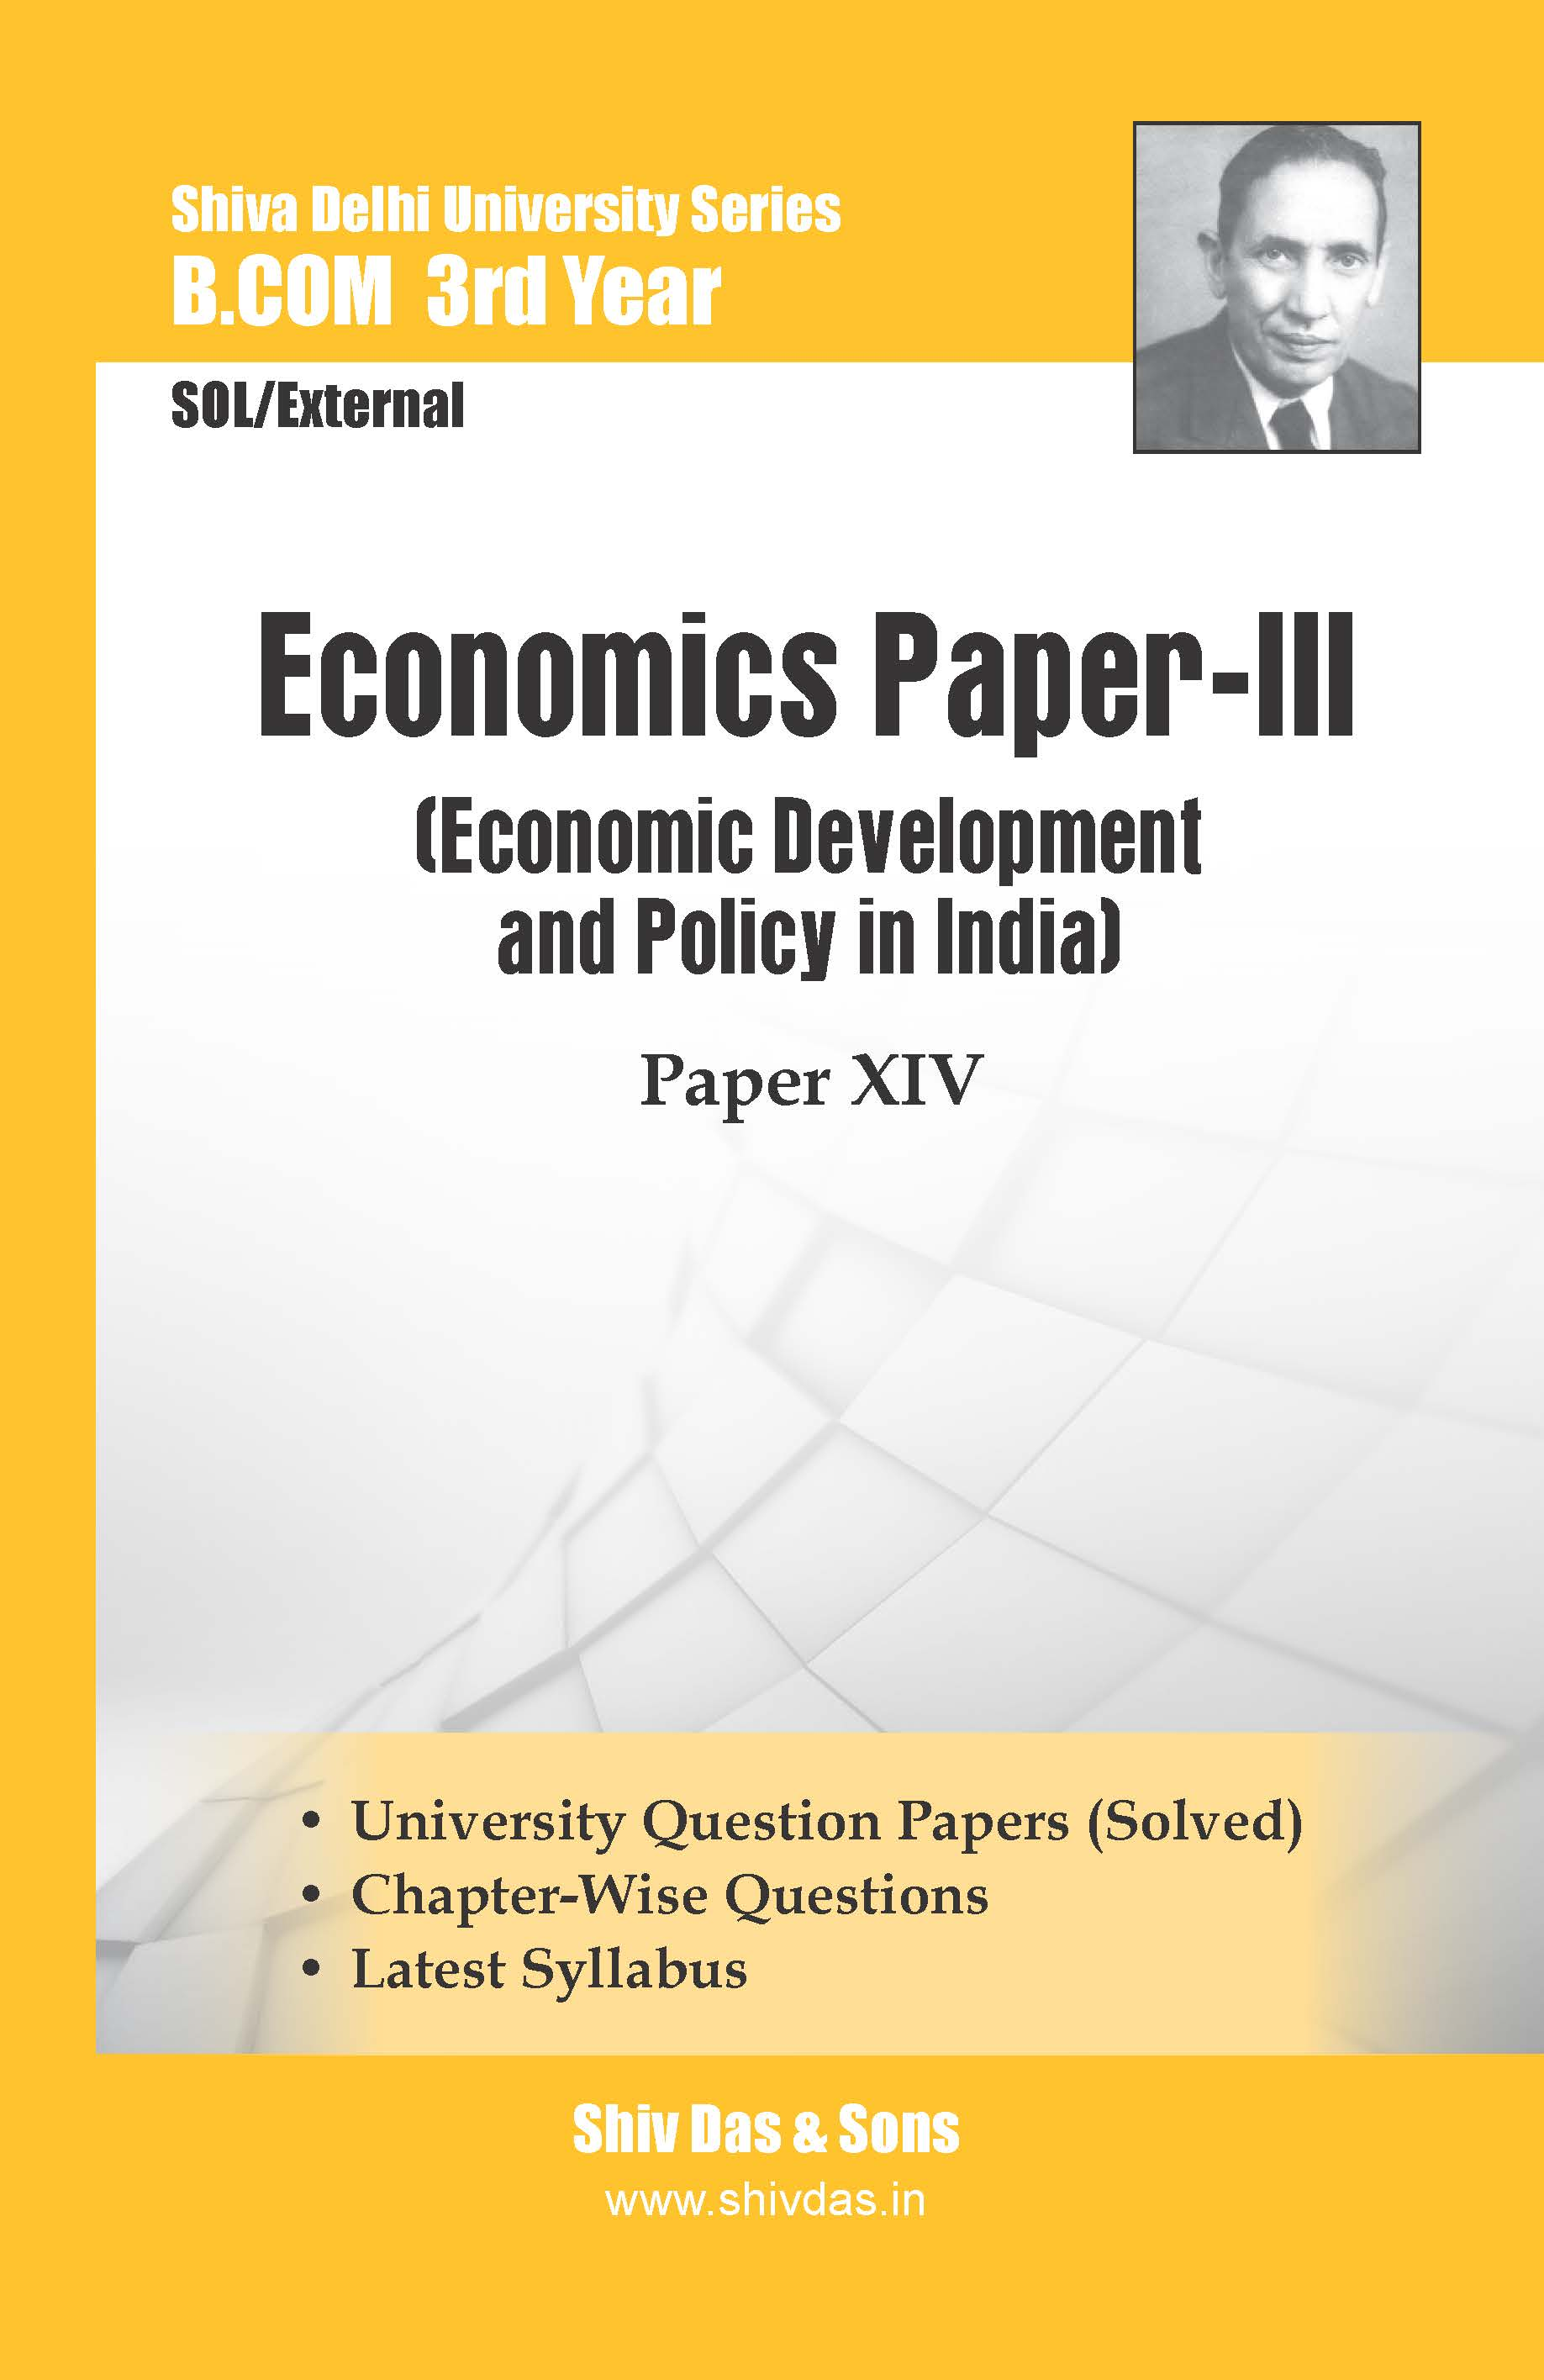 B.Com-3rd Year-SOL/External-Economics Paper-III (Hindi Medium)-Shiv Das-Delhi University Series